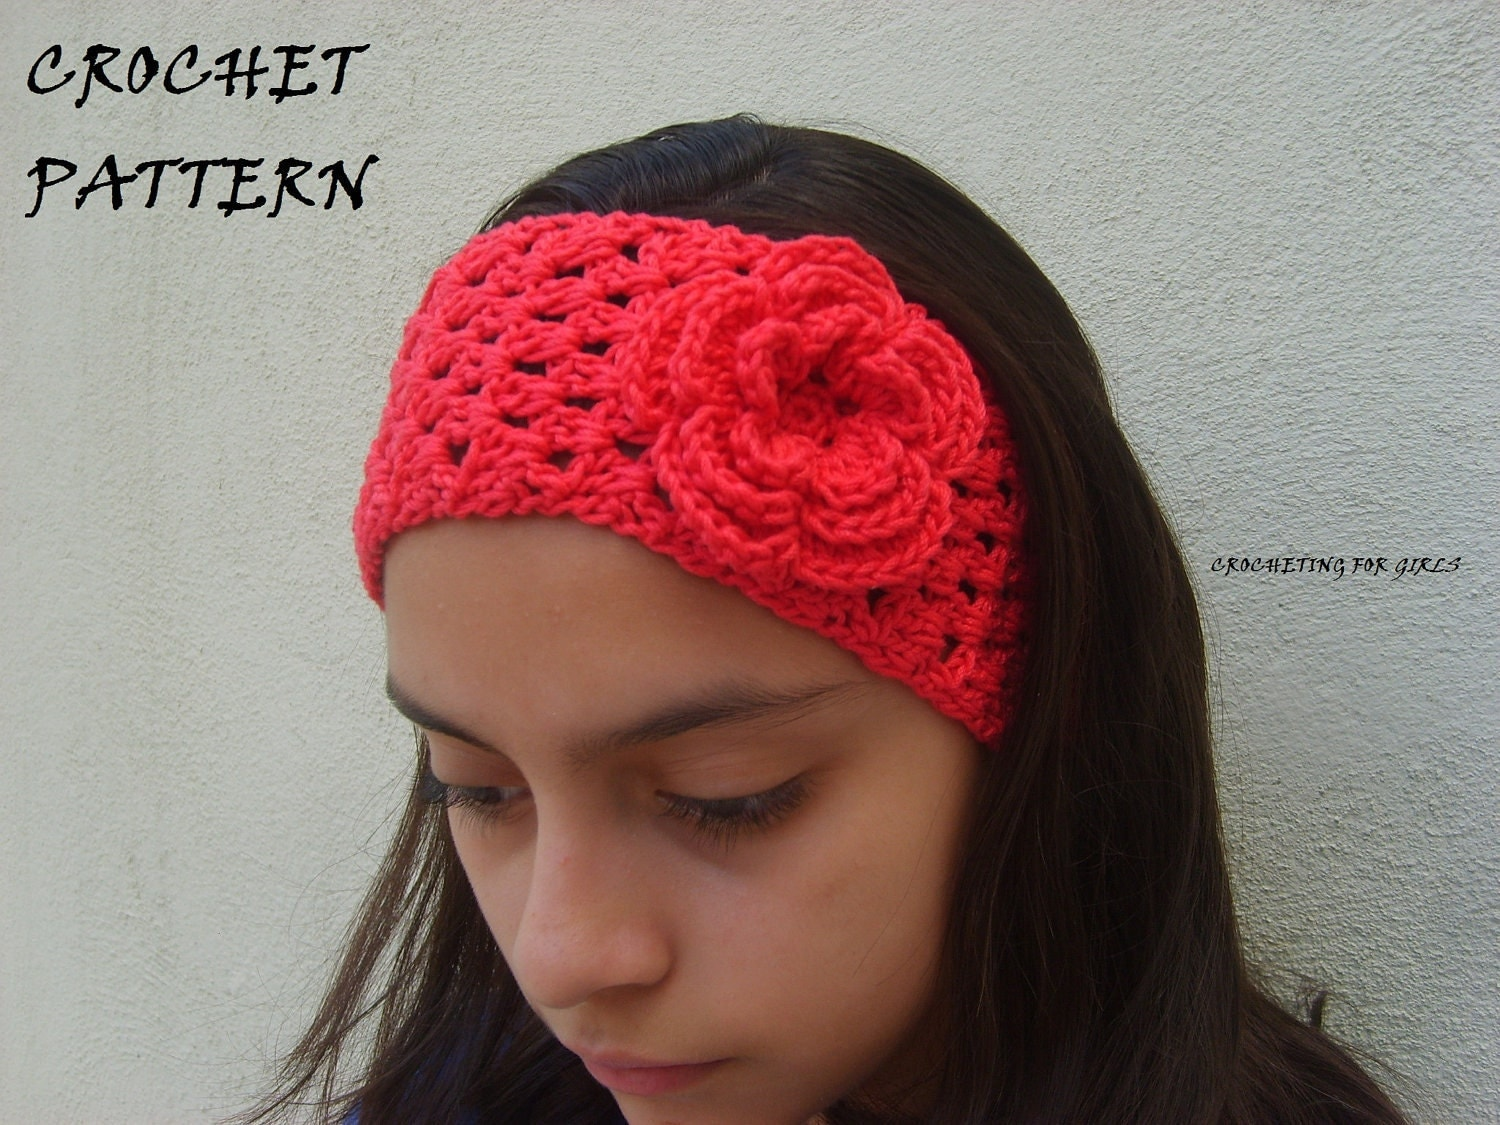 Crochet Pattern For A Flower Headband : Crocheted headband/headwrap with flower by crochetingforgirls